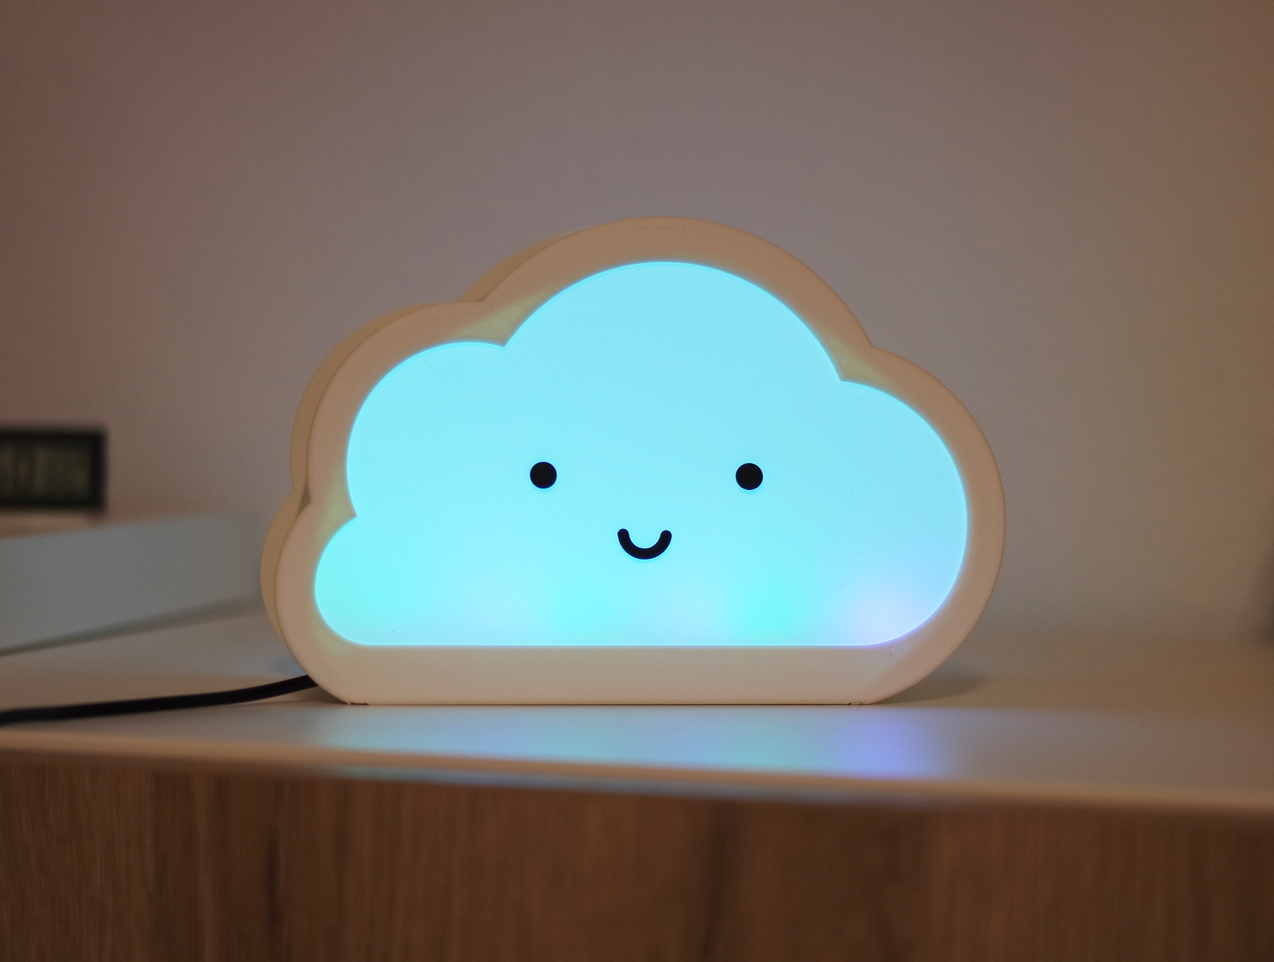 2.jpg Download free STL file Happy Cloud Lamps - With Casting Shadow Effect • 3D printable model, NKpolymers